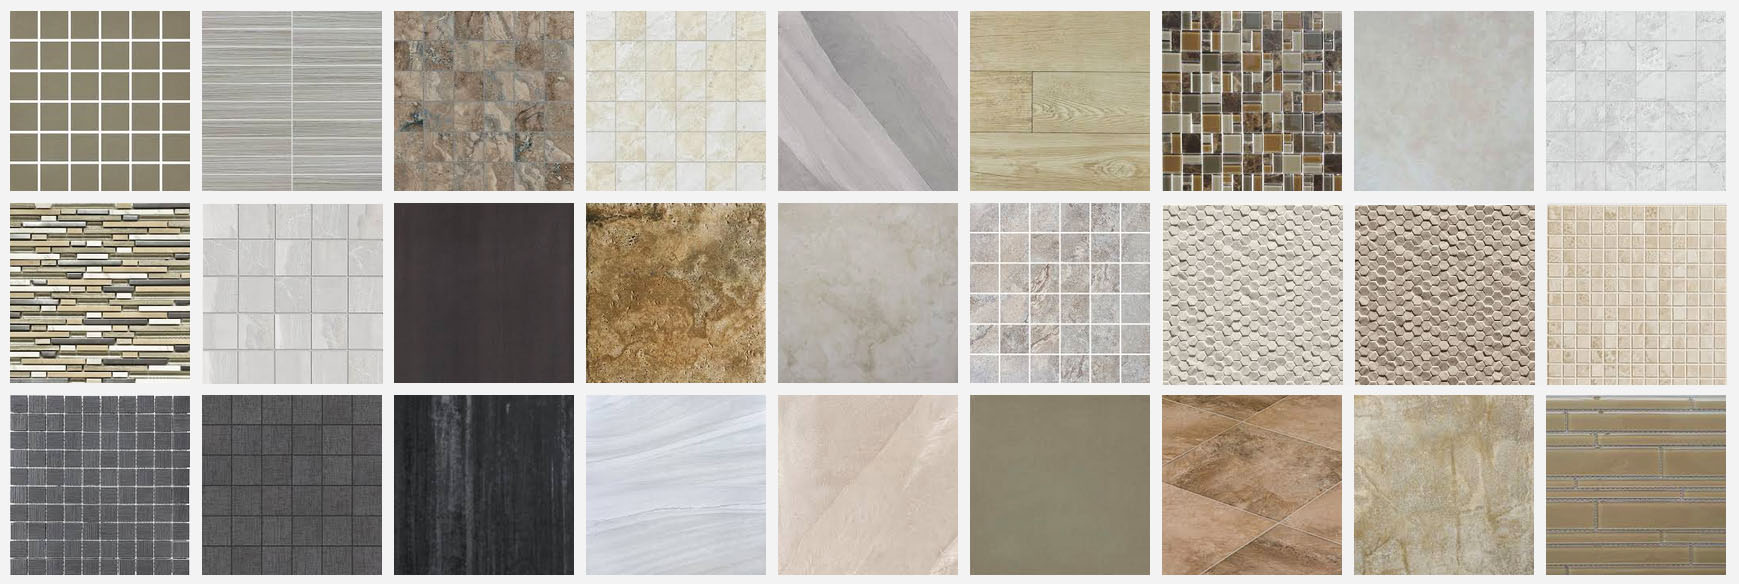 Tile floor samples